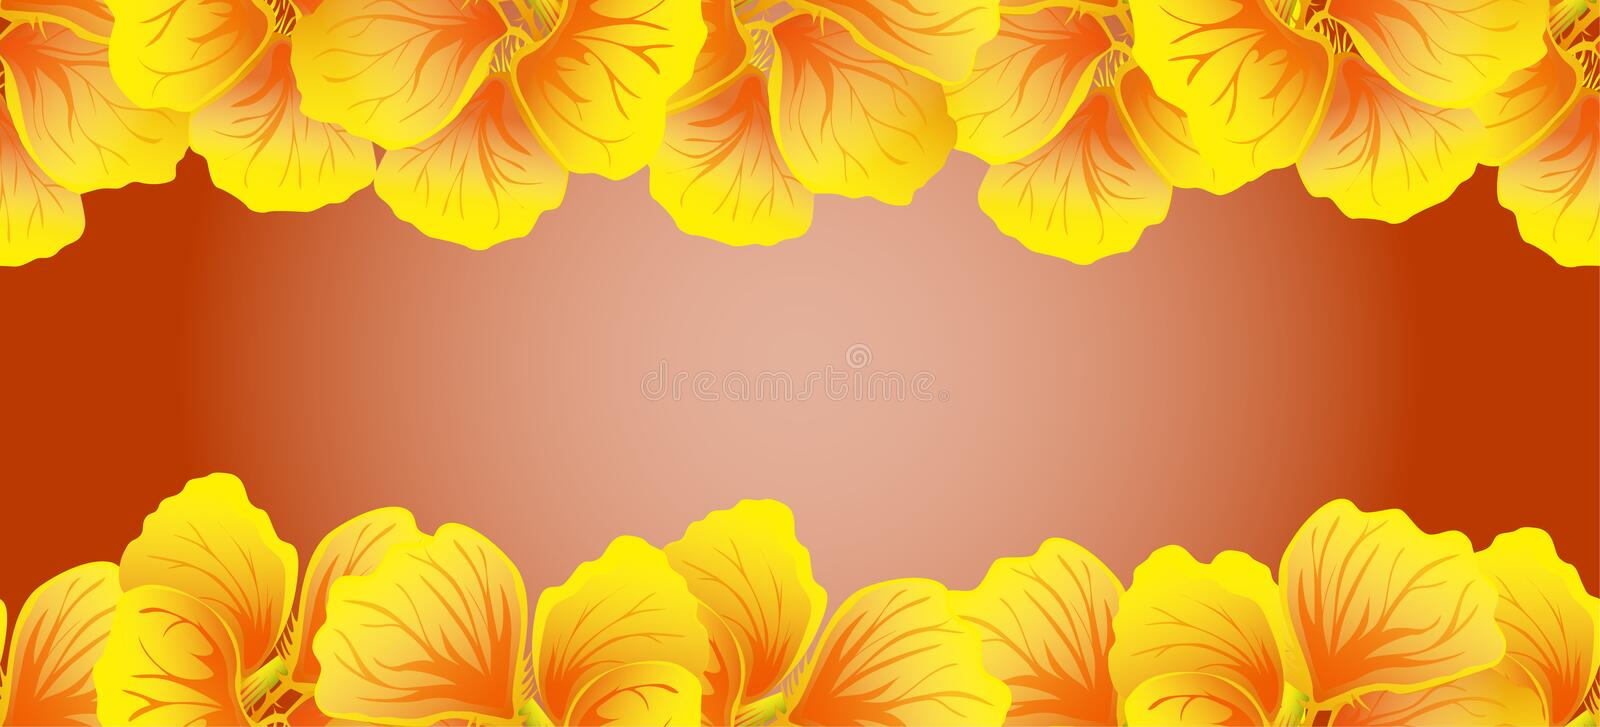 Bright Nasturtium Seamless border. Yellow flowers. Beautiful Horizontal banner. Red background. Card, invitation, poster, stock illustration